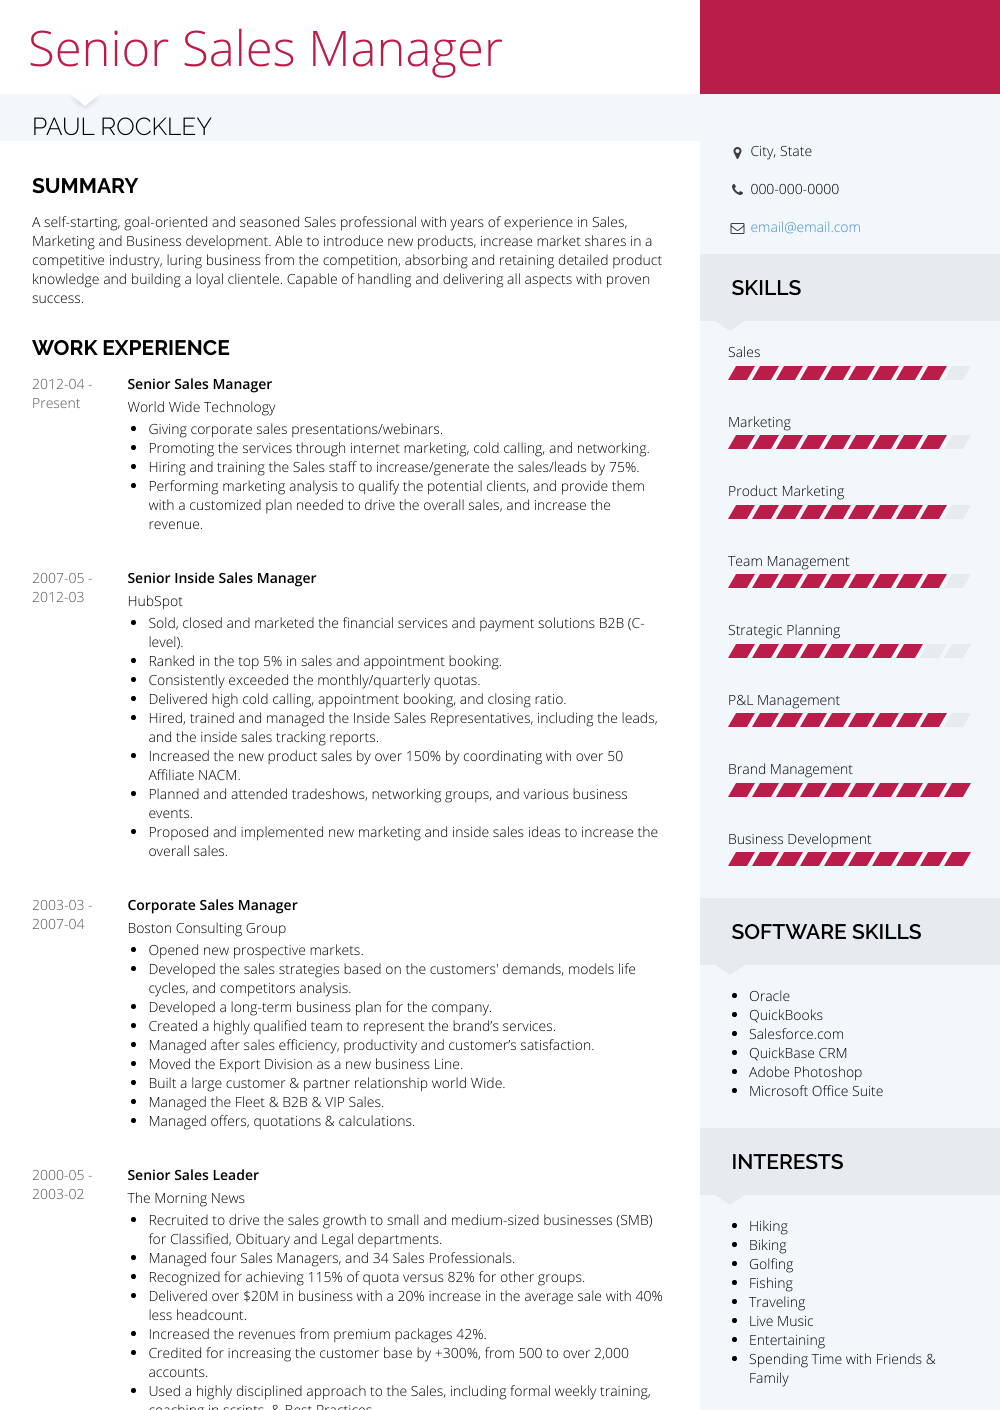 Senior Sales Manager Resume Samples Amp Templates Visualcv